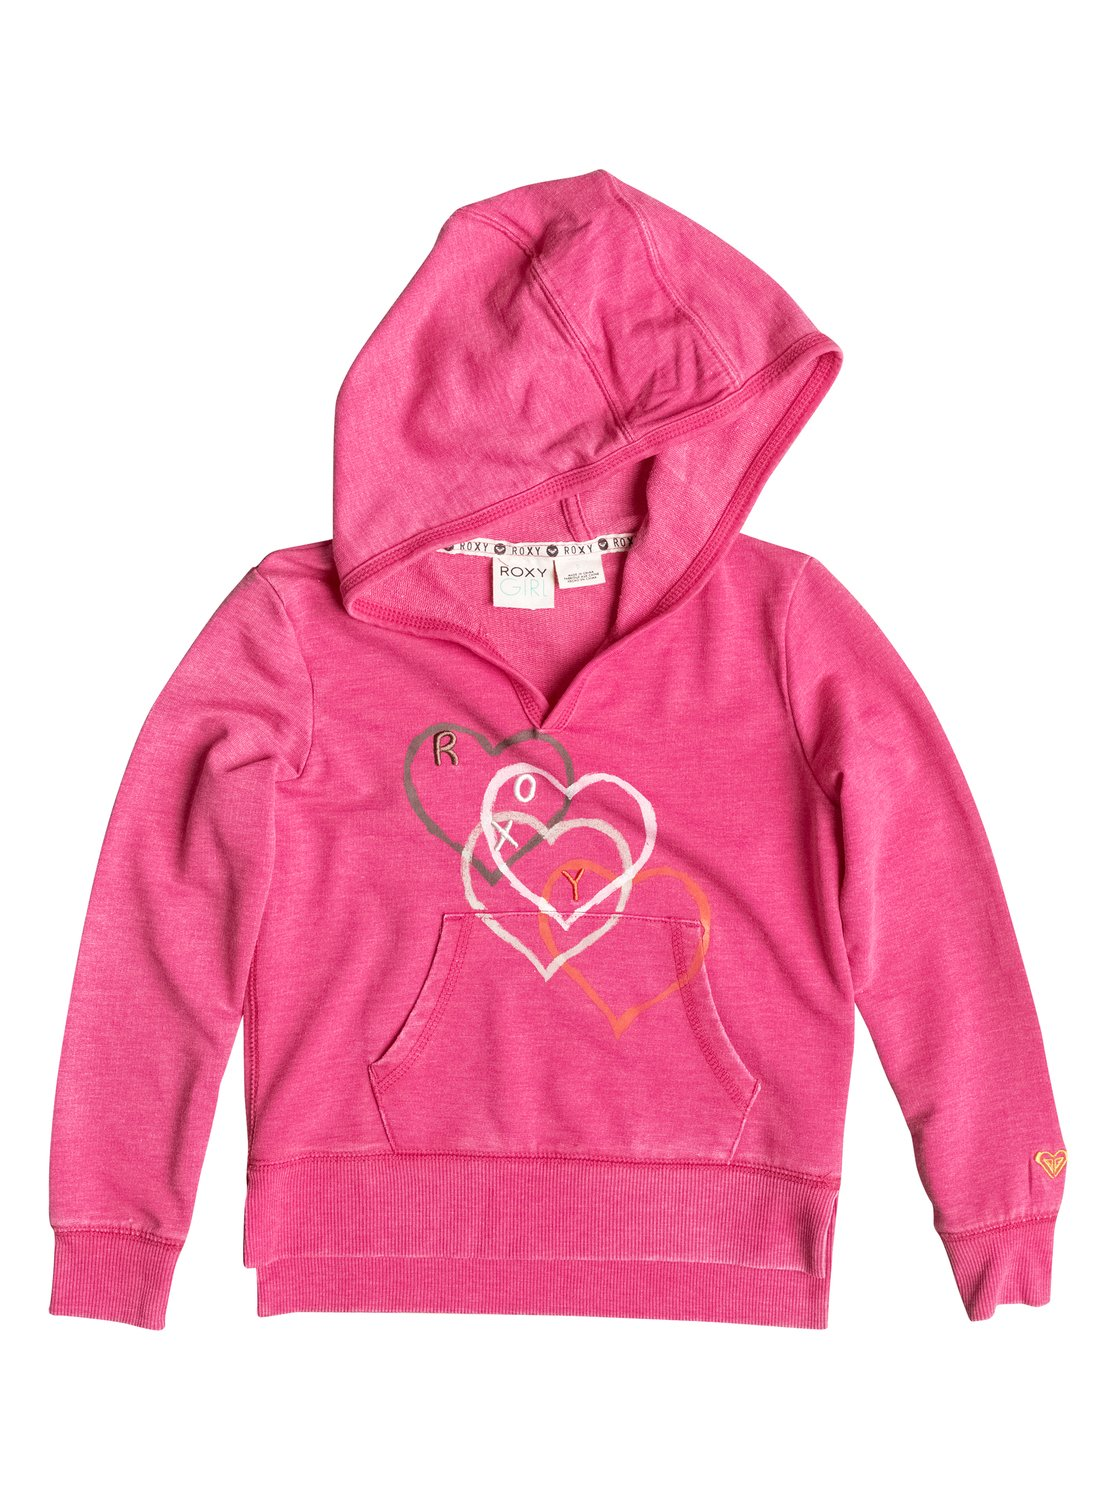 Shop for baby pullover hoodies online at Target. Free shipping on purchases over $35 and save 5% every day with your Target REDcard.